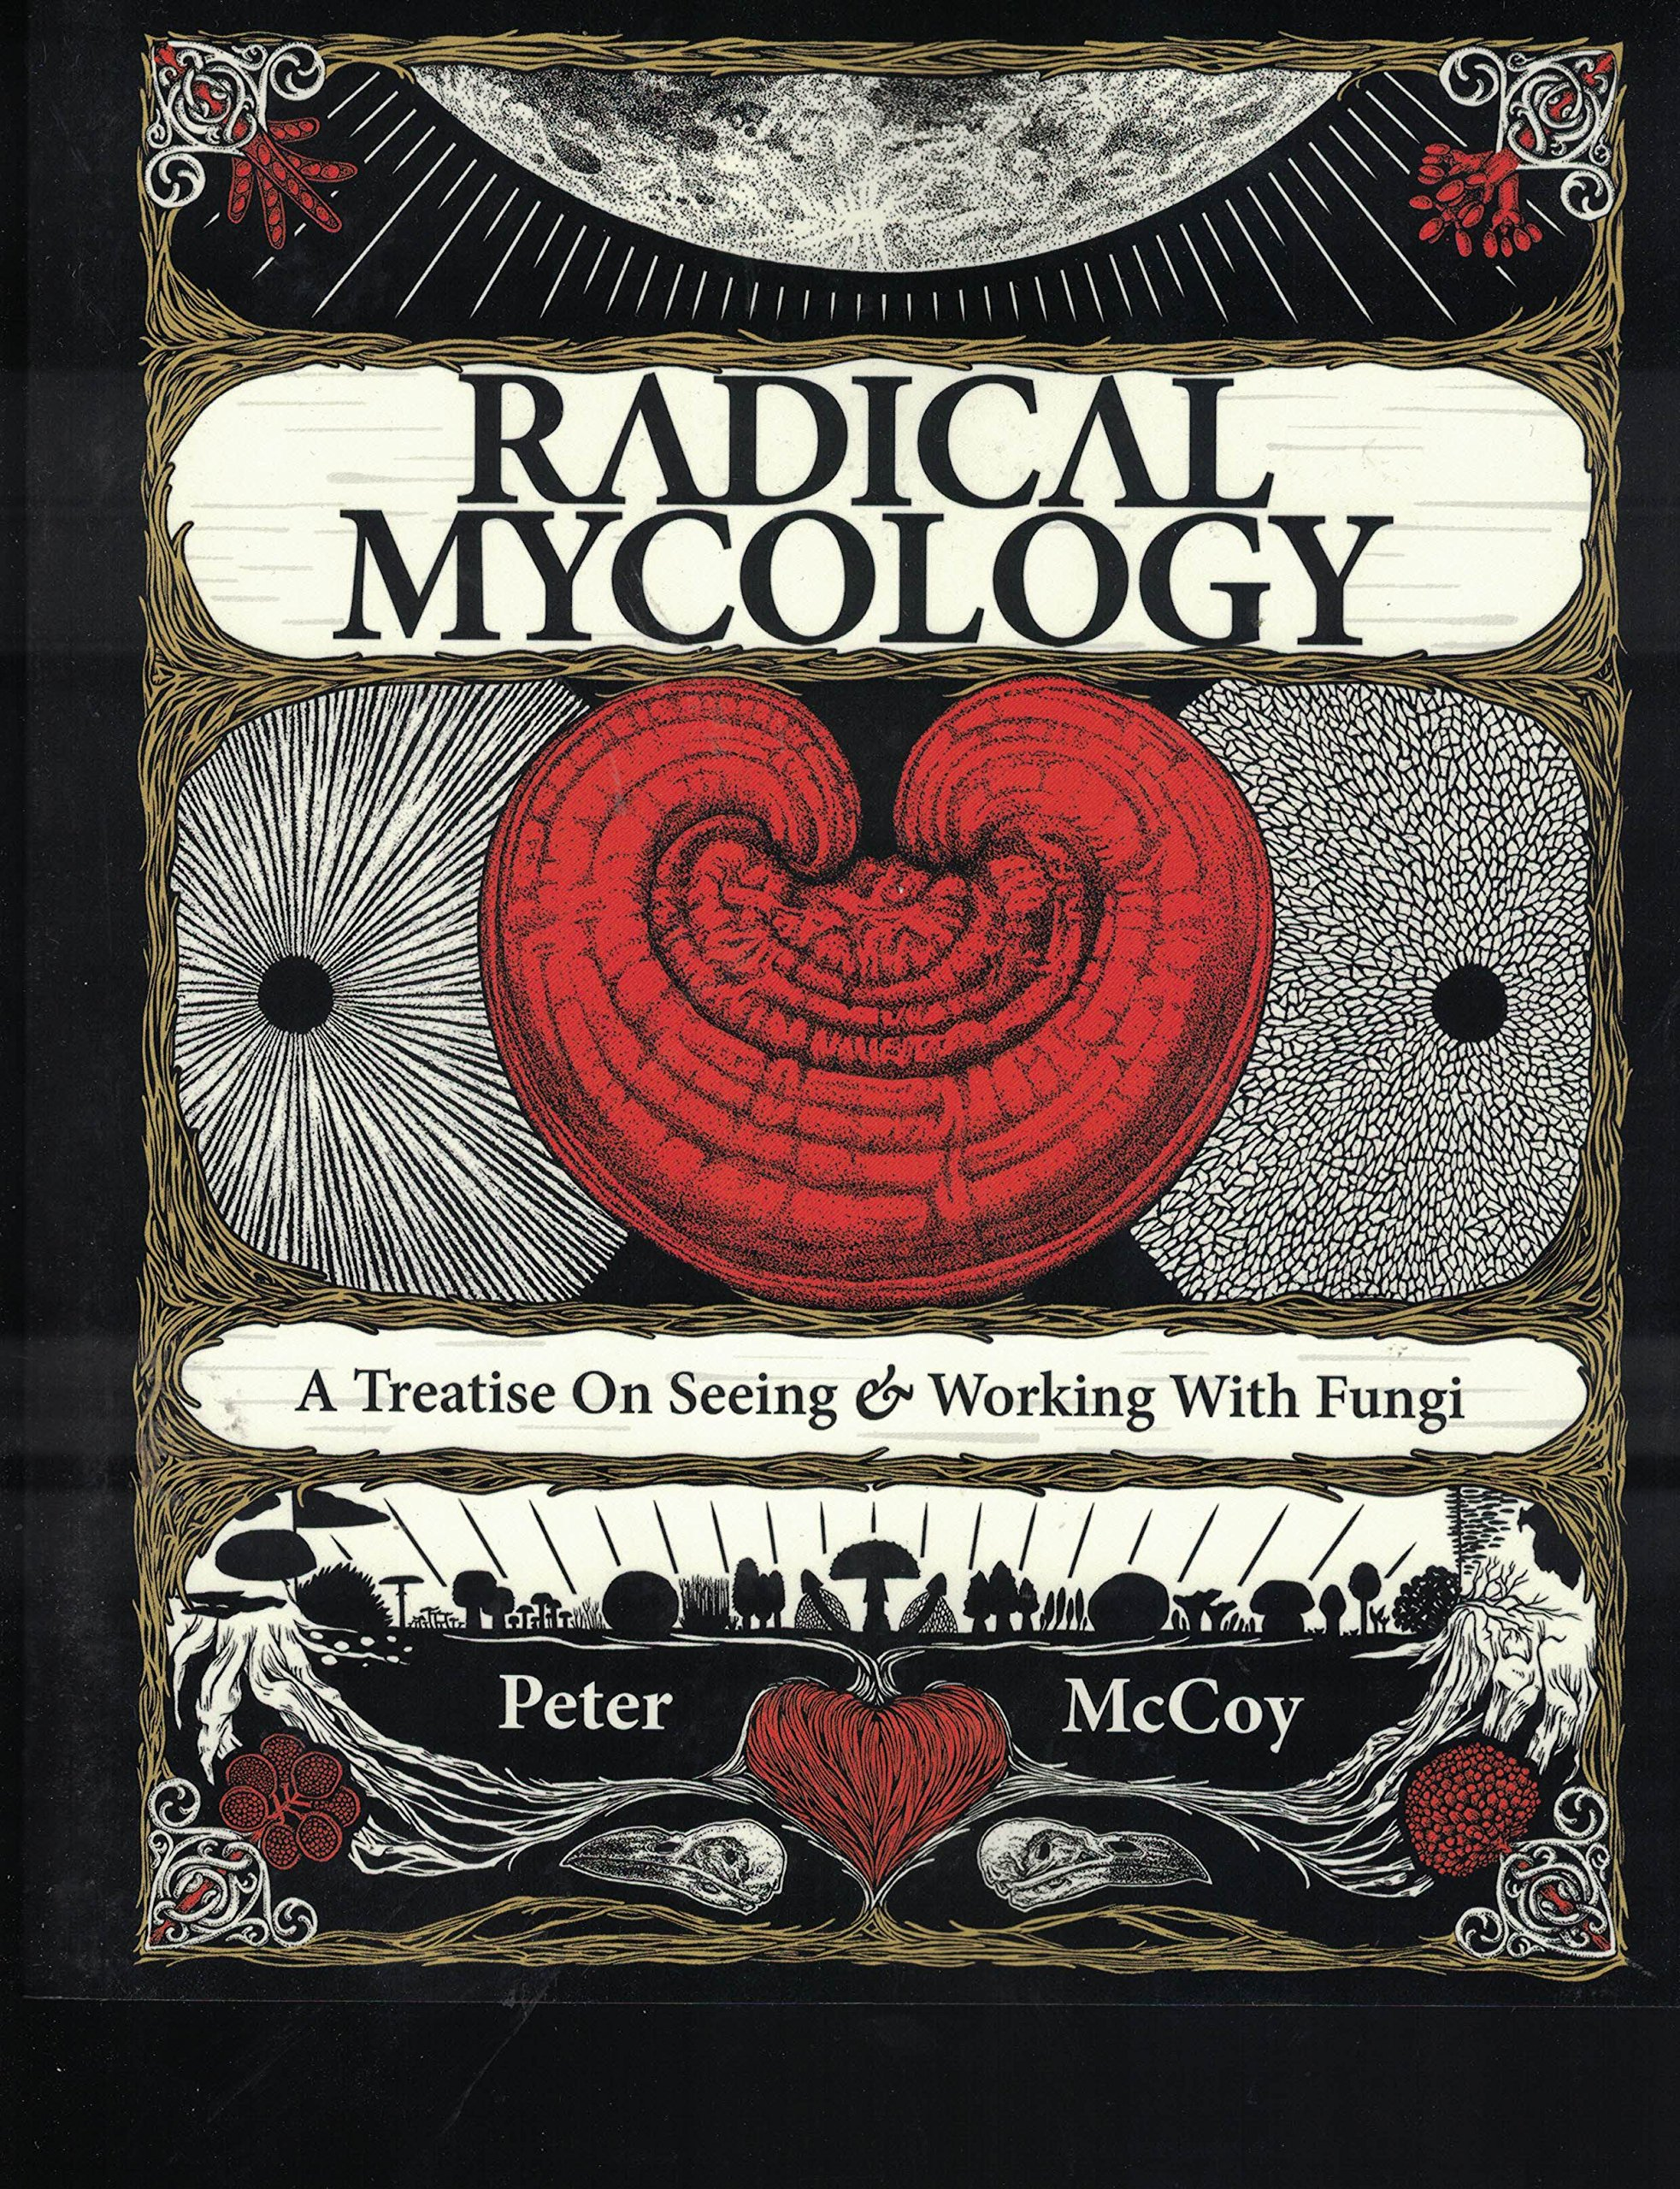 Radical Mycology: A Treatise On Seeing And Working With Fungi, Peter McCoy